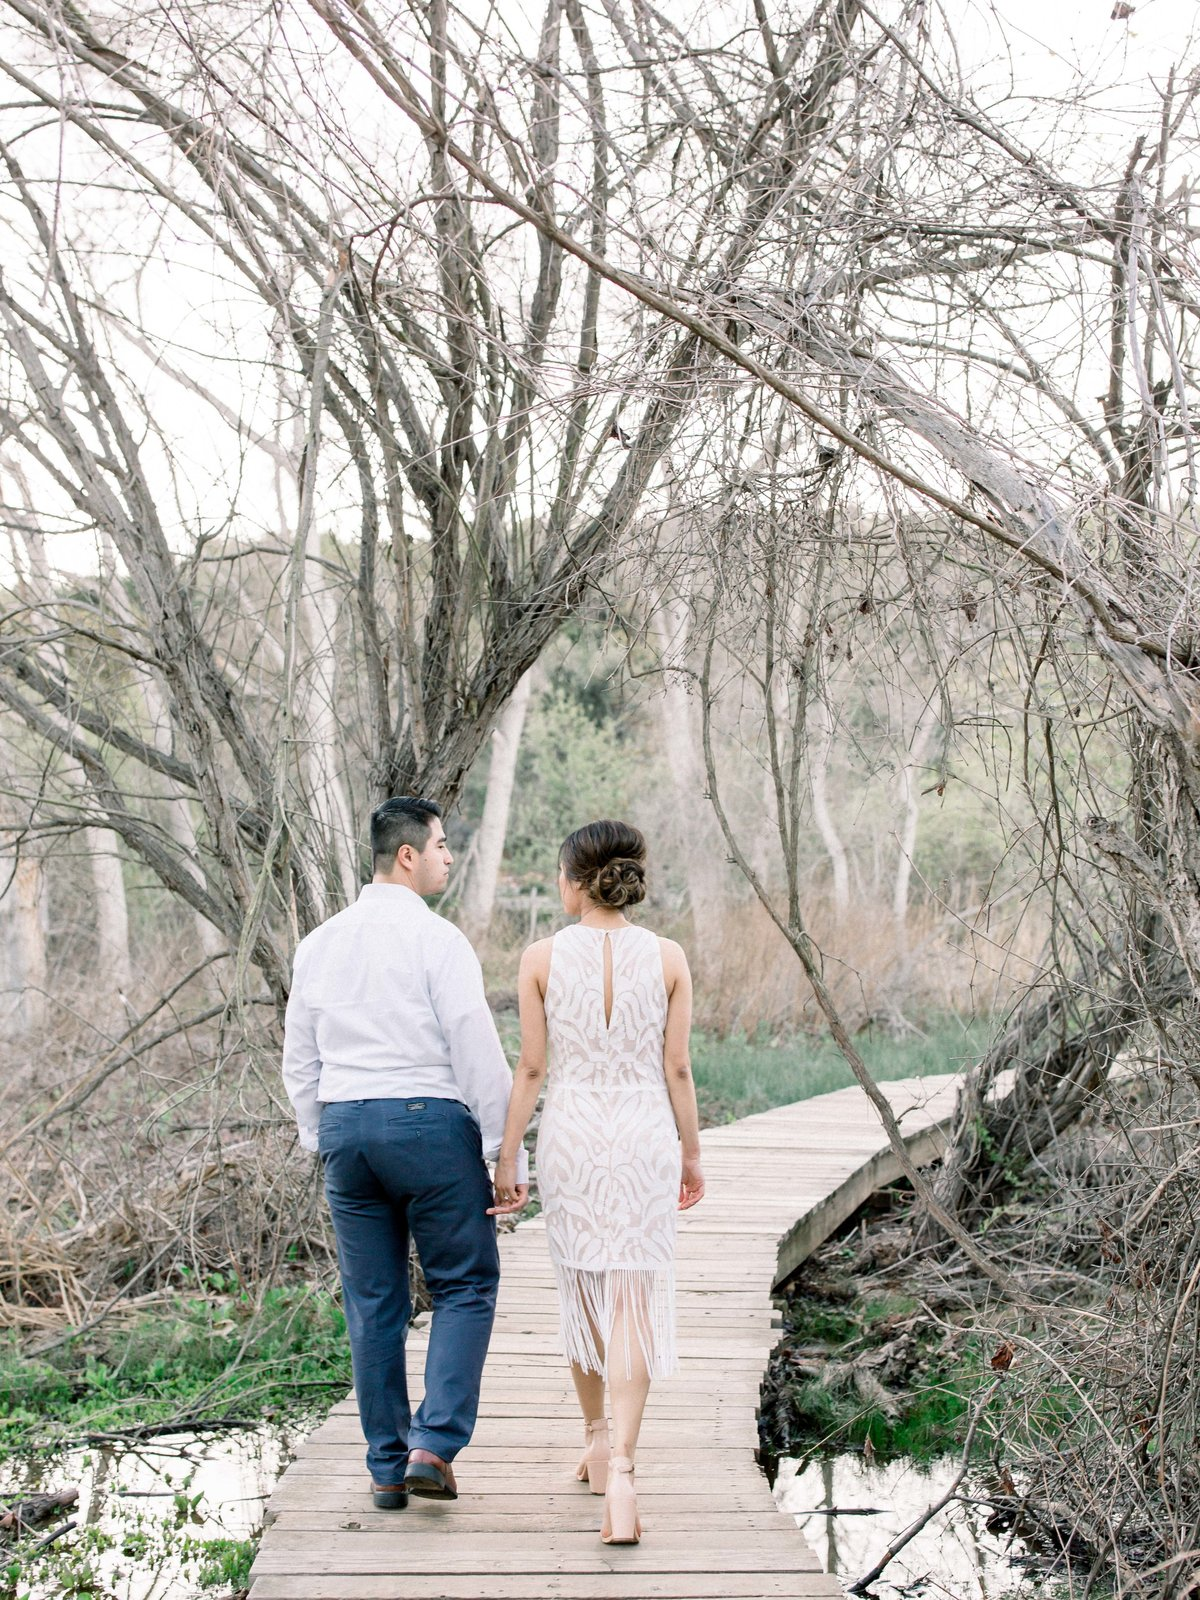 Babsie-Ly-Photography-Film-Engagement-at-the-park-nature-Orange-County-San-Diego-Stephanie-Tony-004